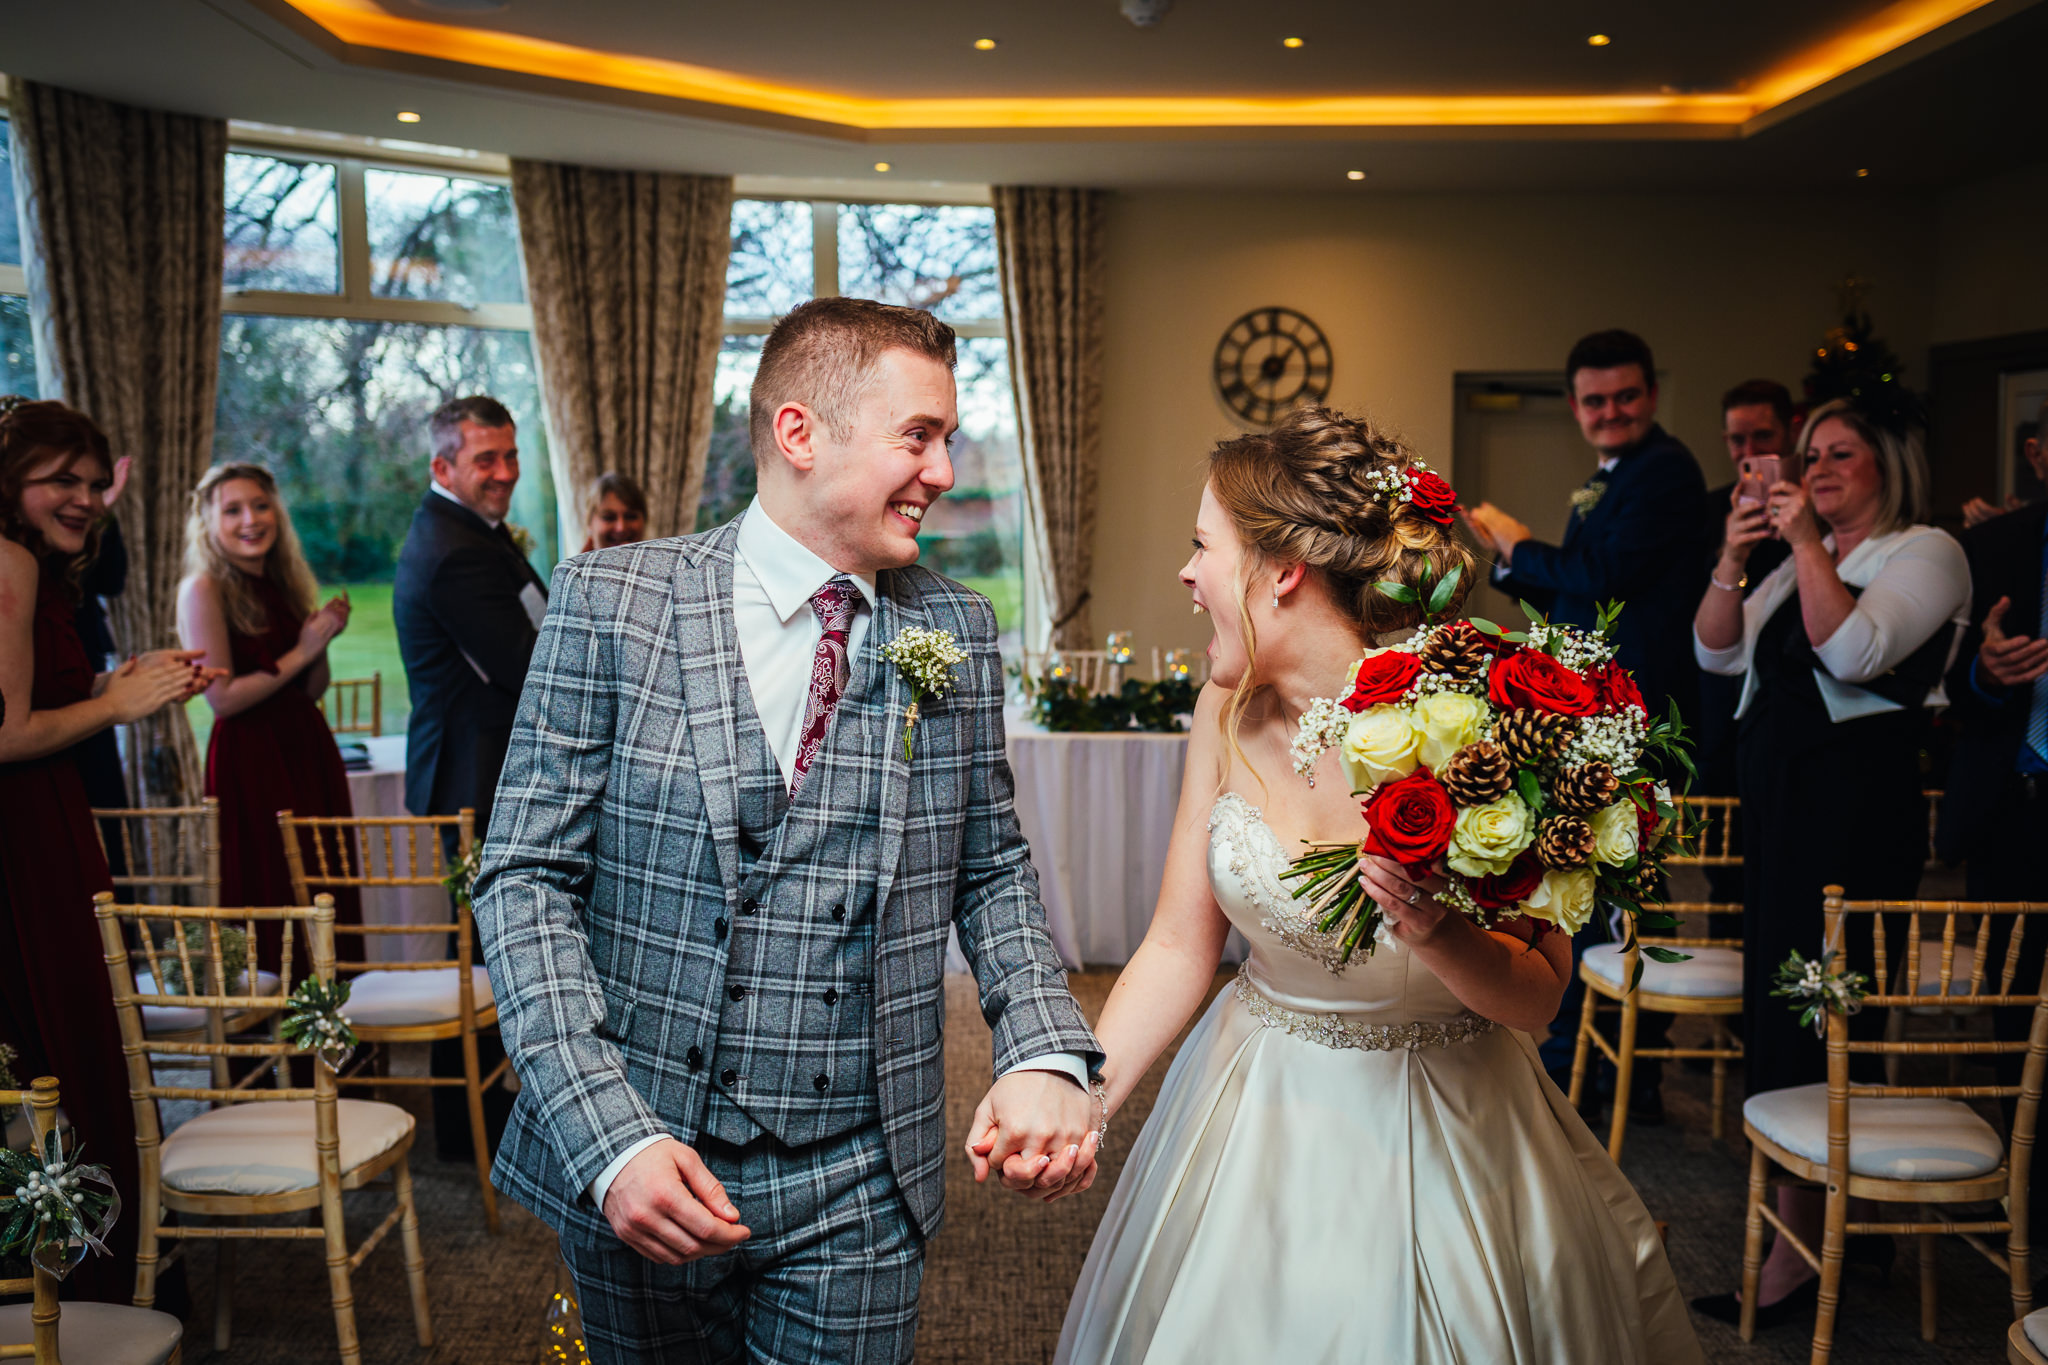 Wedding Photography Nottingham - Couple walking up the isle after wedding smiling at guests